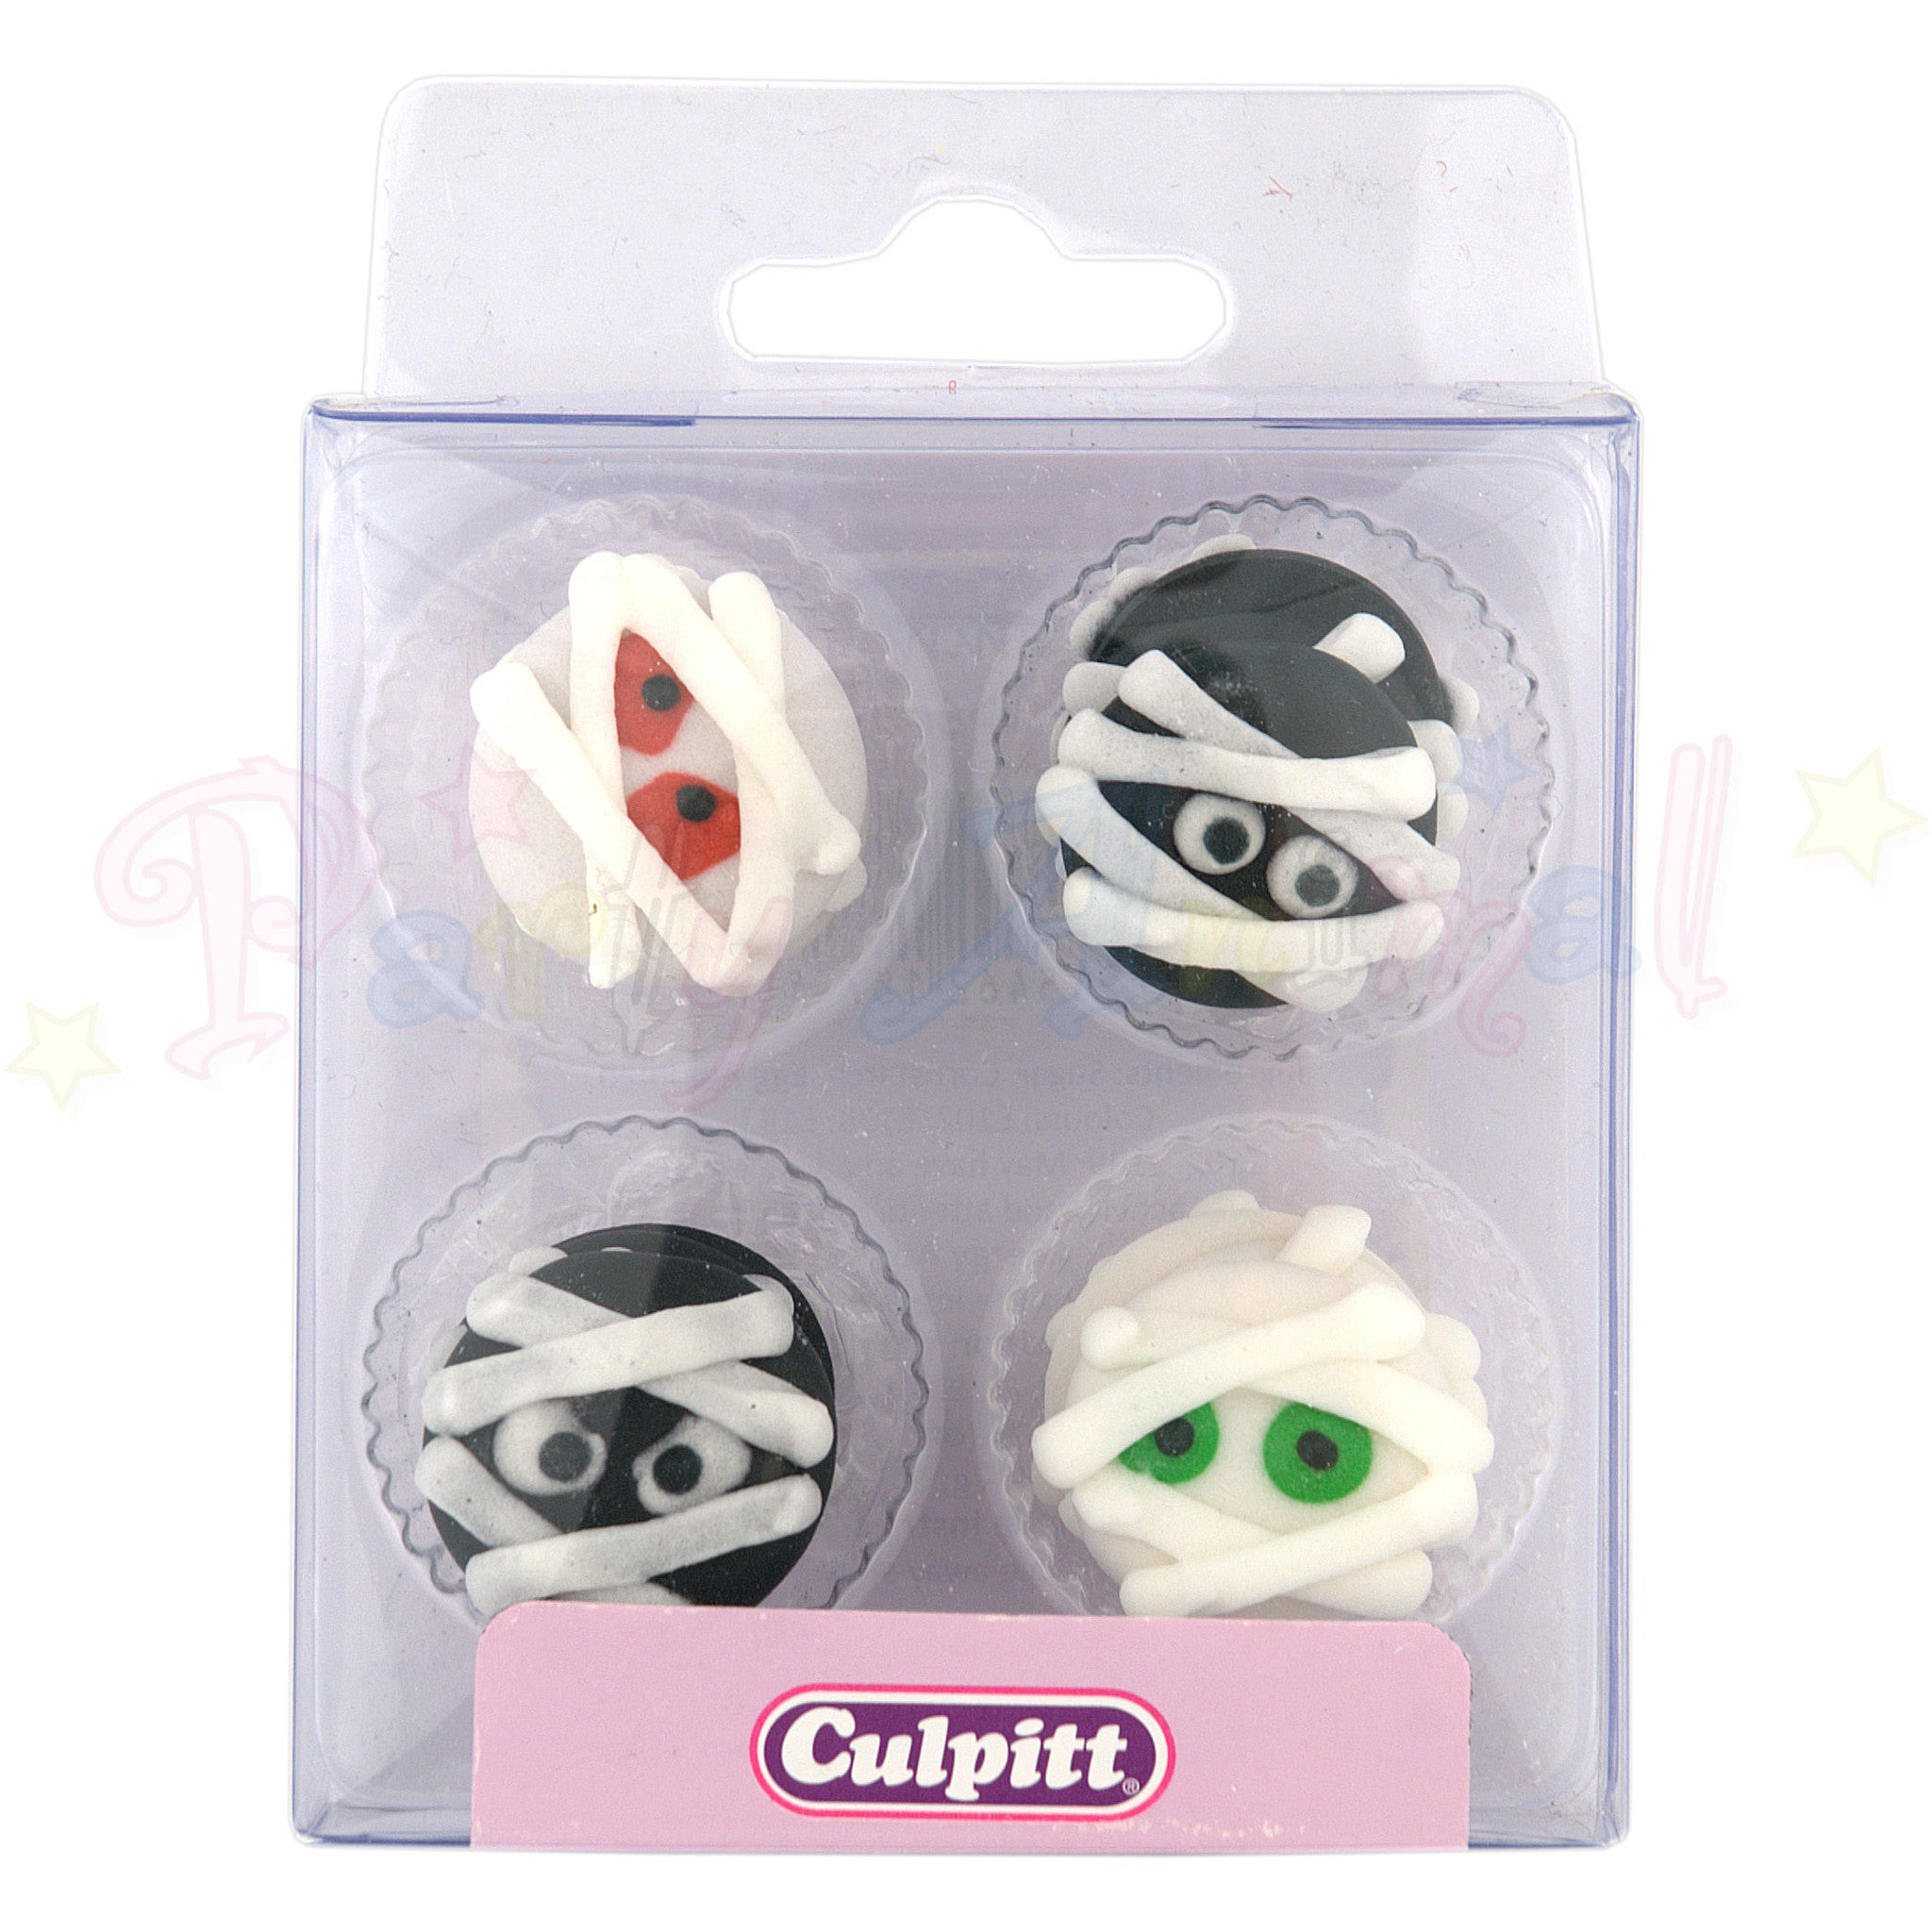 Culpitt Edible Piped Decorations - Halloween Mummy - Cupcake Toppers